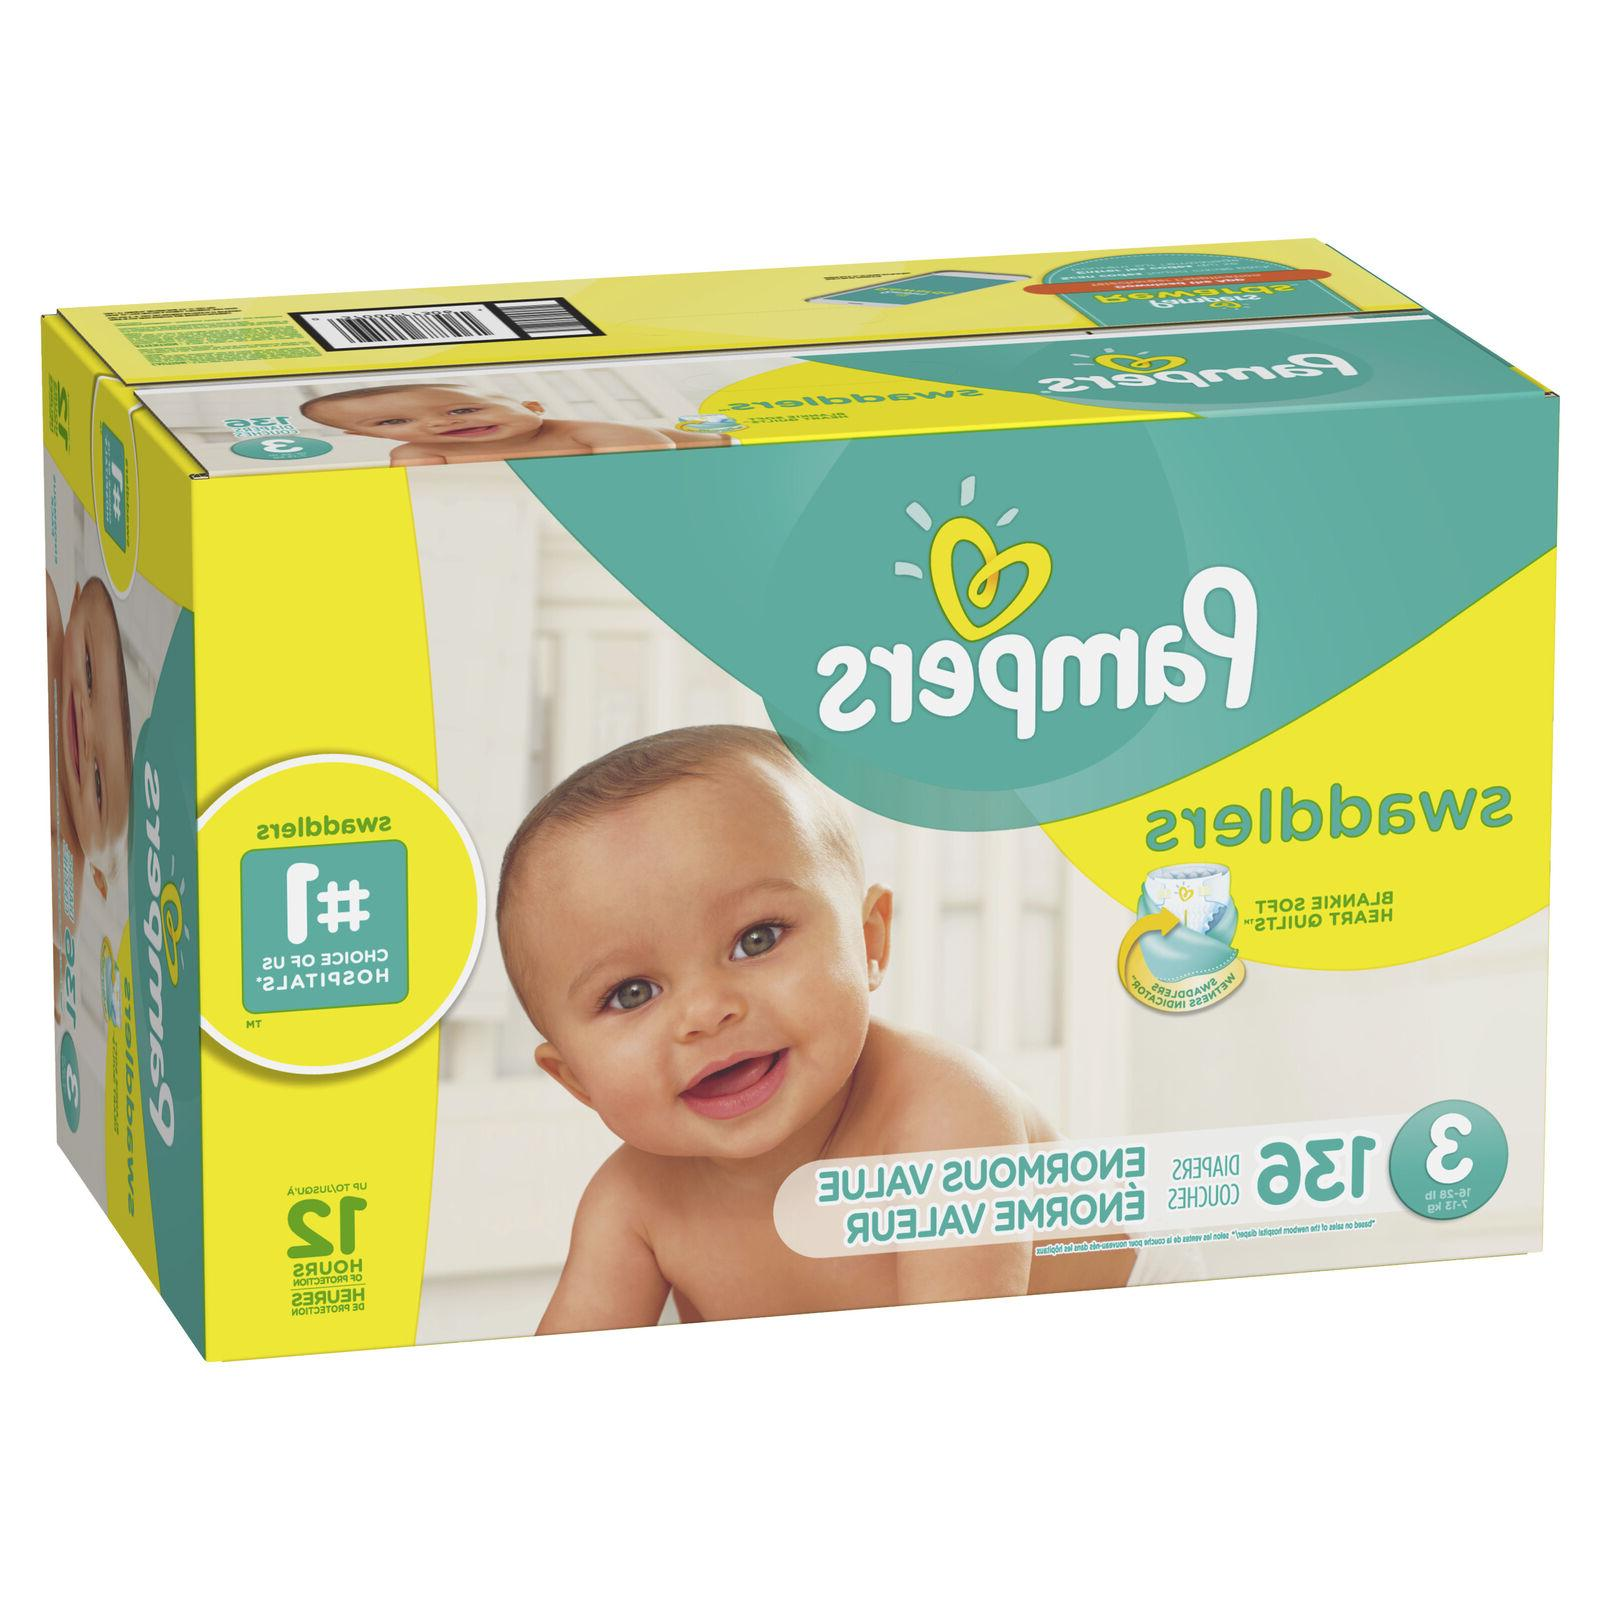 swaddlers diapers size 3 136 count